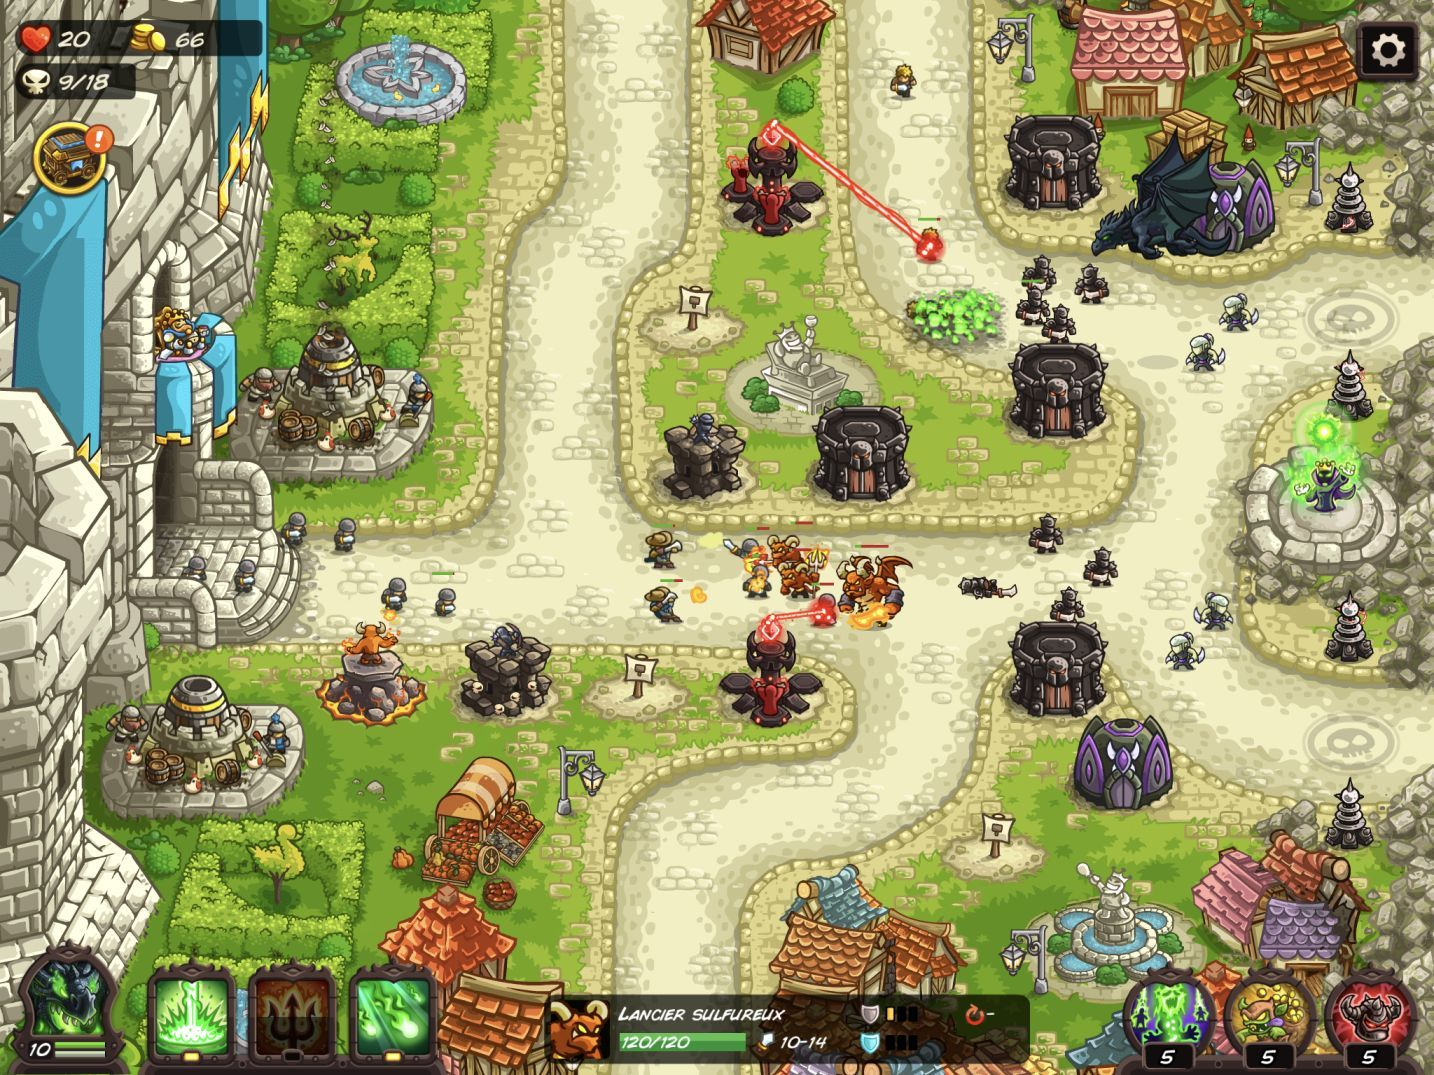 Kingdom Rush Vengeance (copie d'écran 27 sur iPhone / iPad)